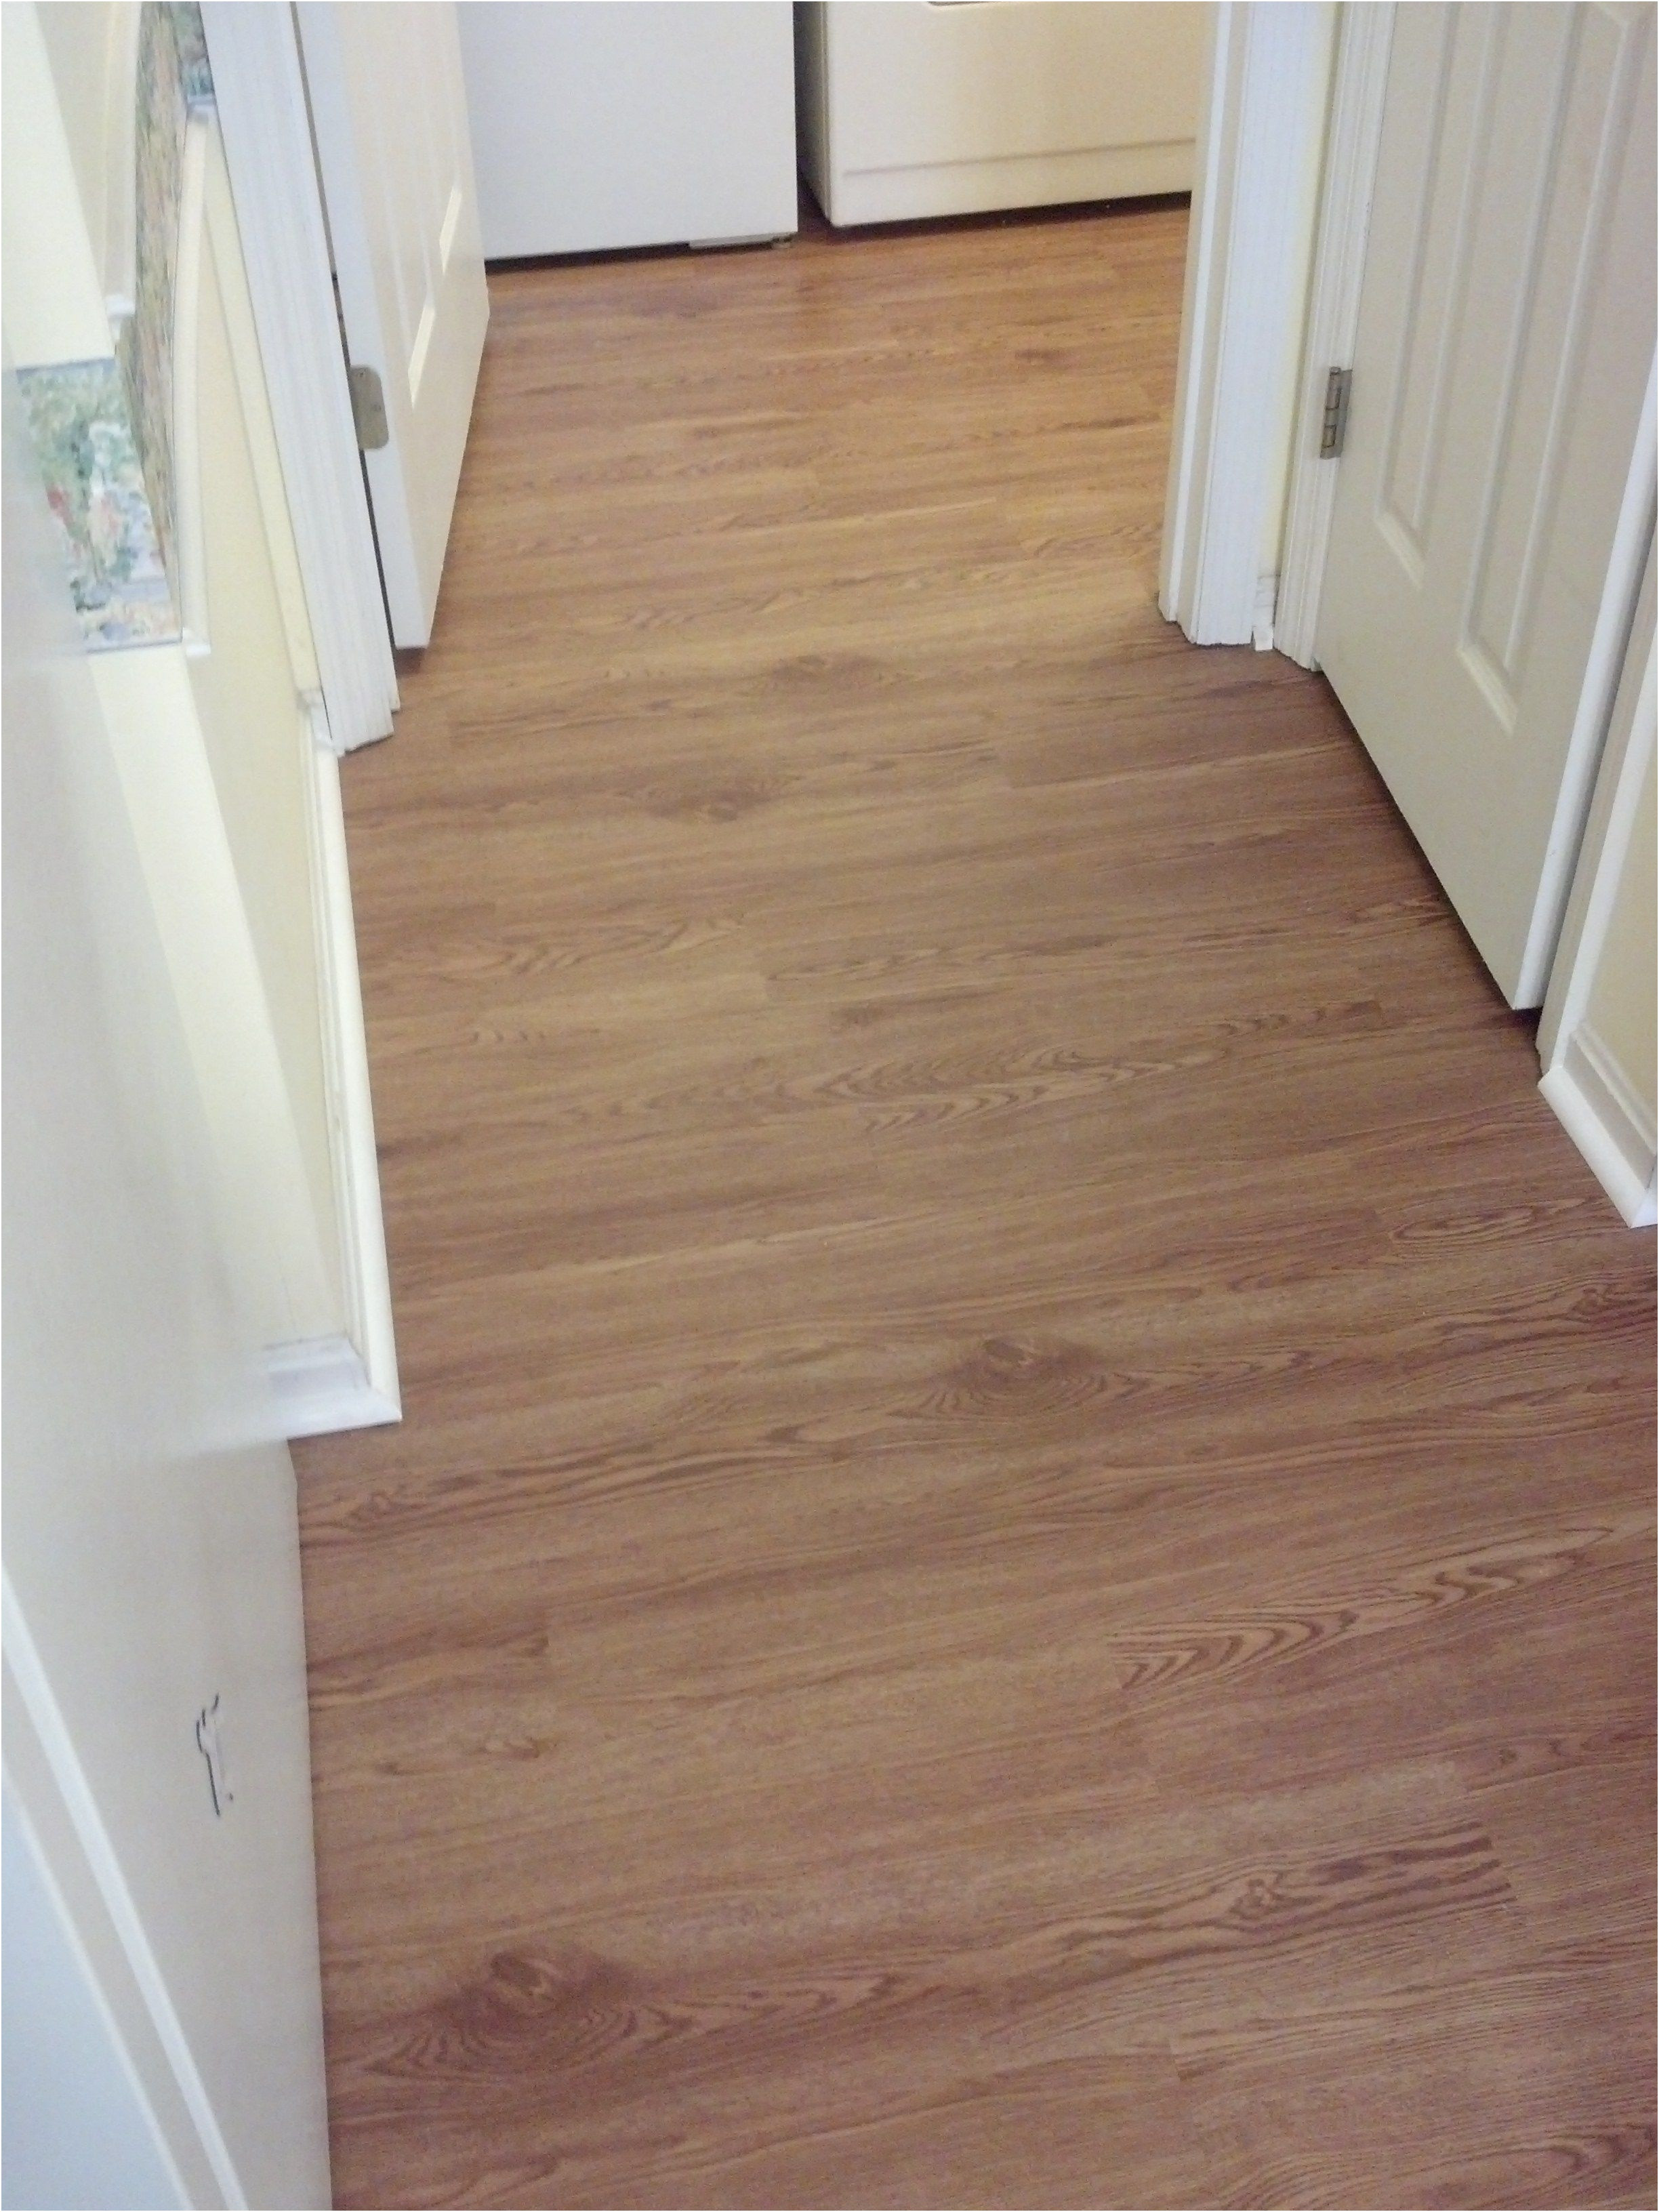 how to install hardwood floor transitions of the flooring place flooring sale near me stock 0d grace place with regard to the flooring place flooring sale near me stock 0d grace place barnegat nj